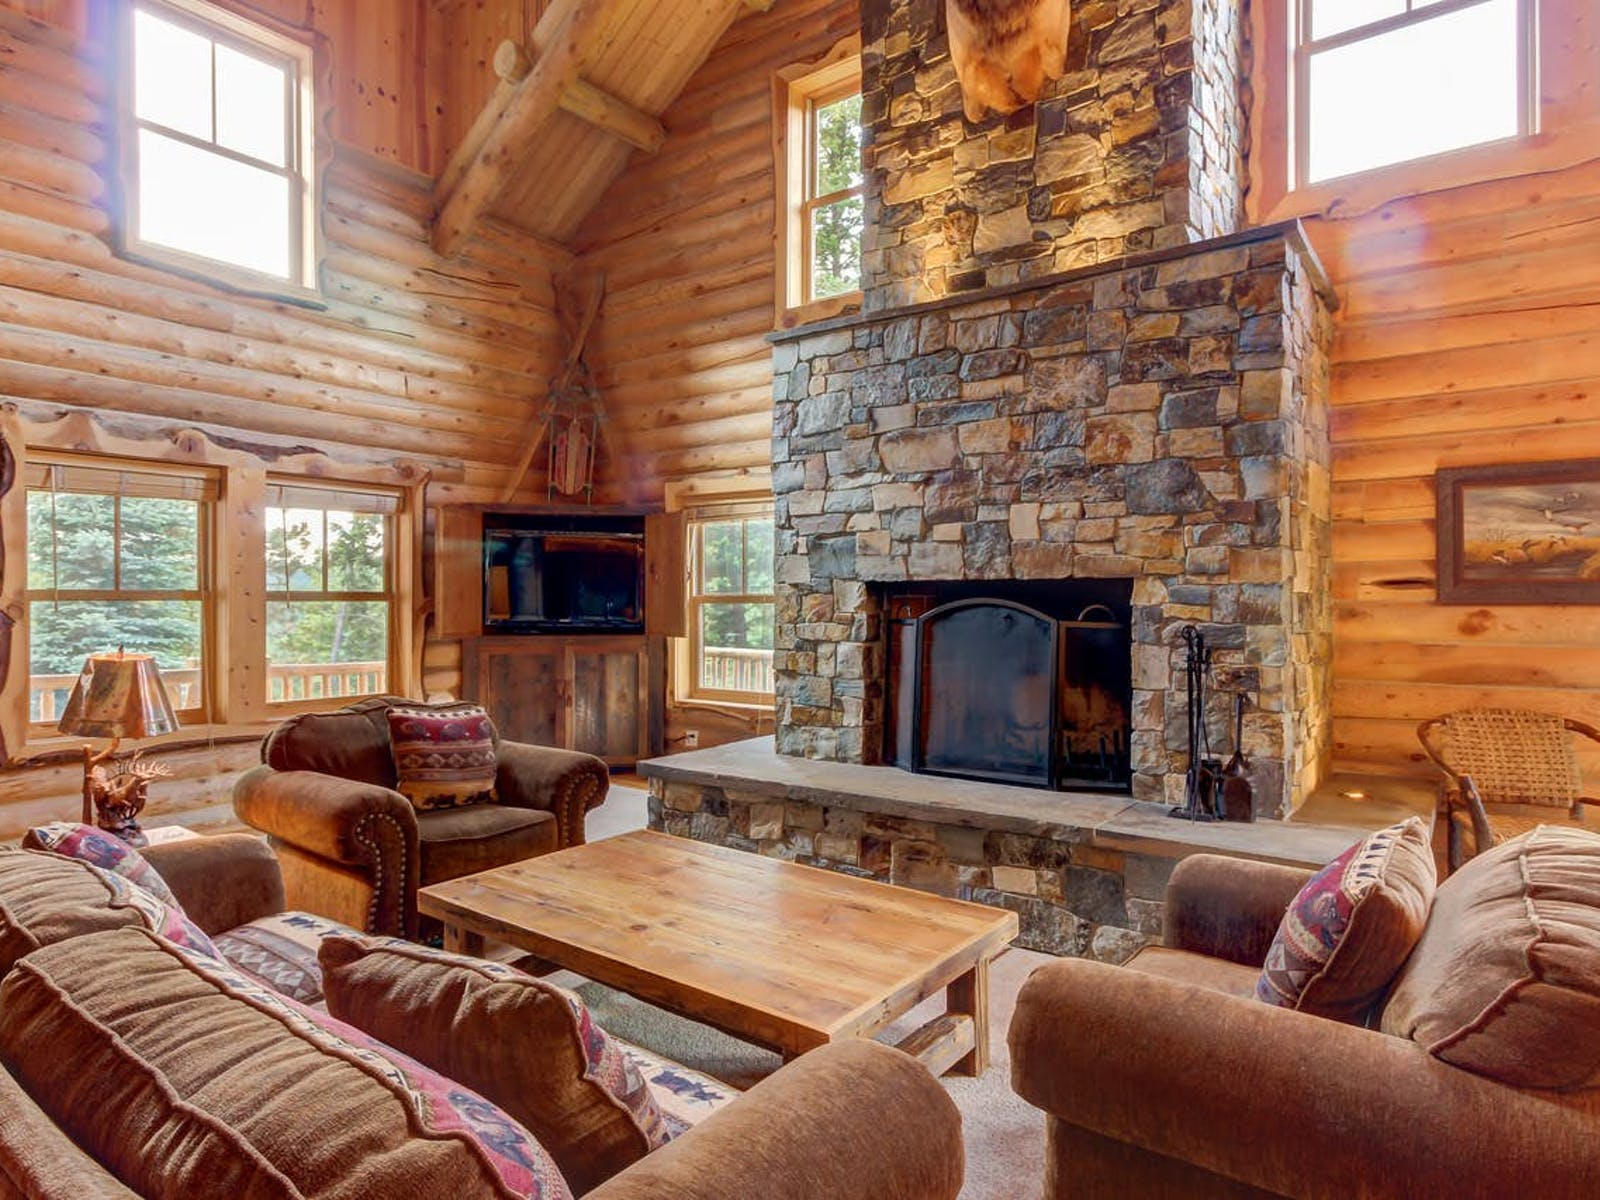 interior of vacation cabin with large stone fireplace, lots of couches and ample natural light